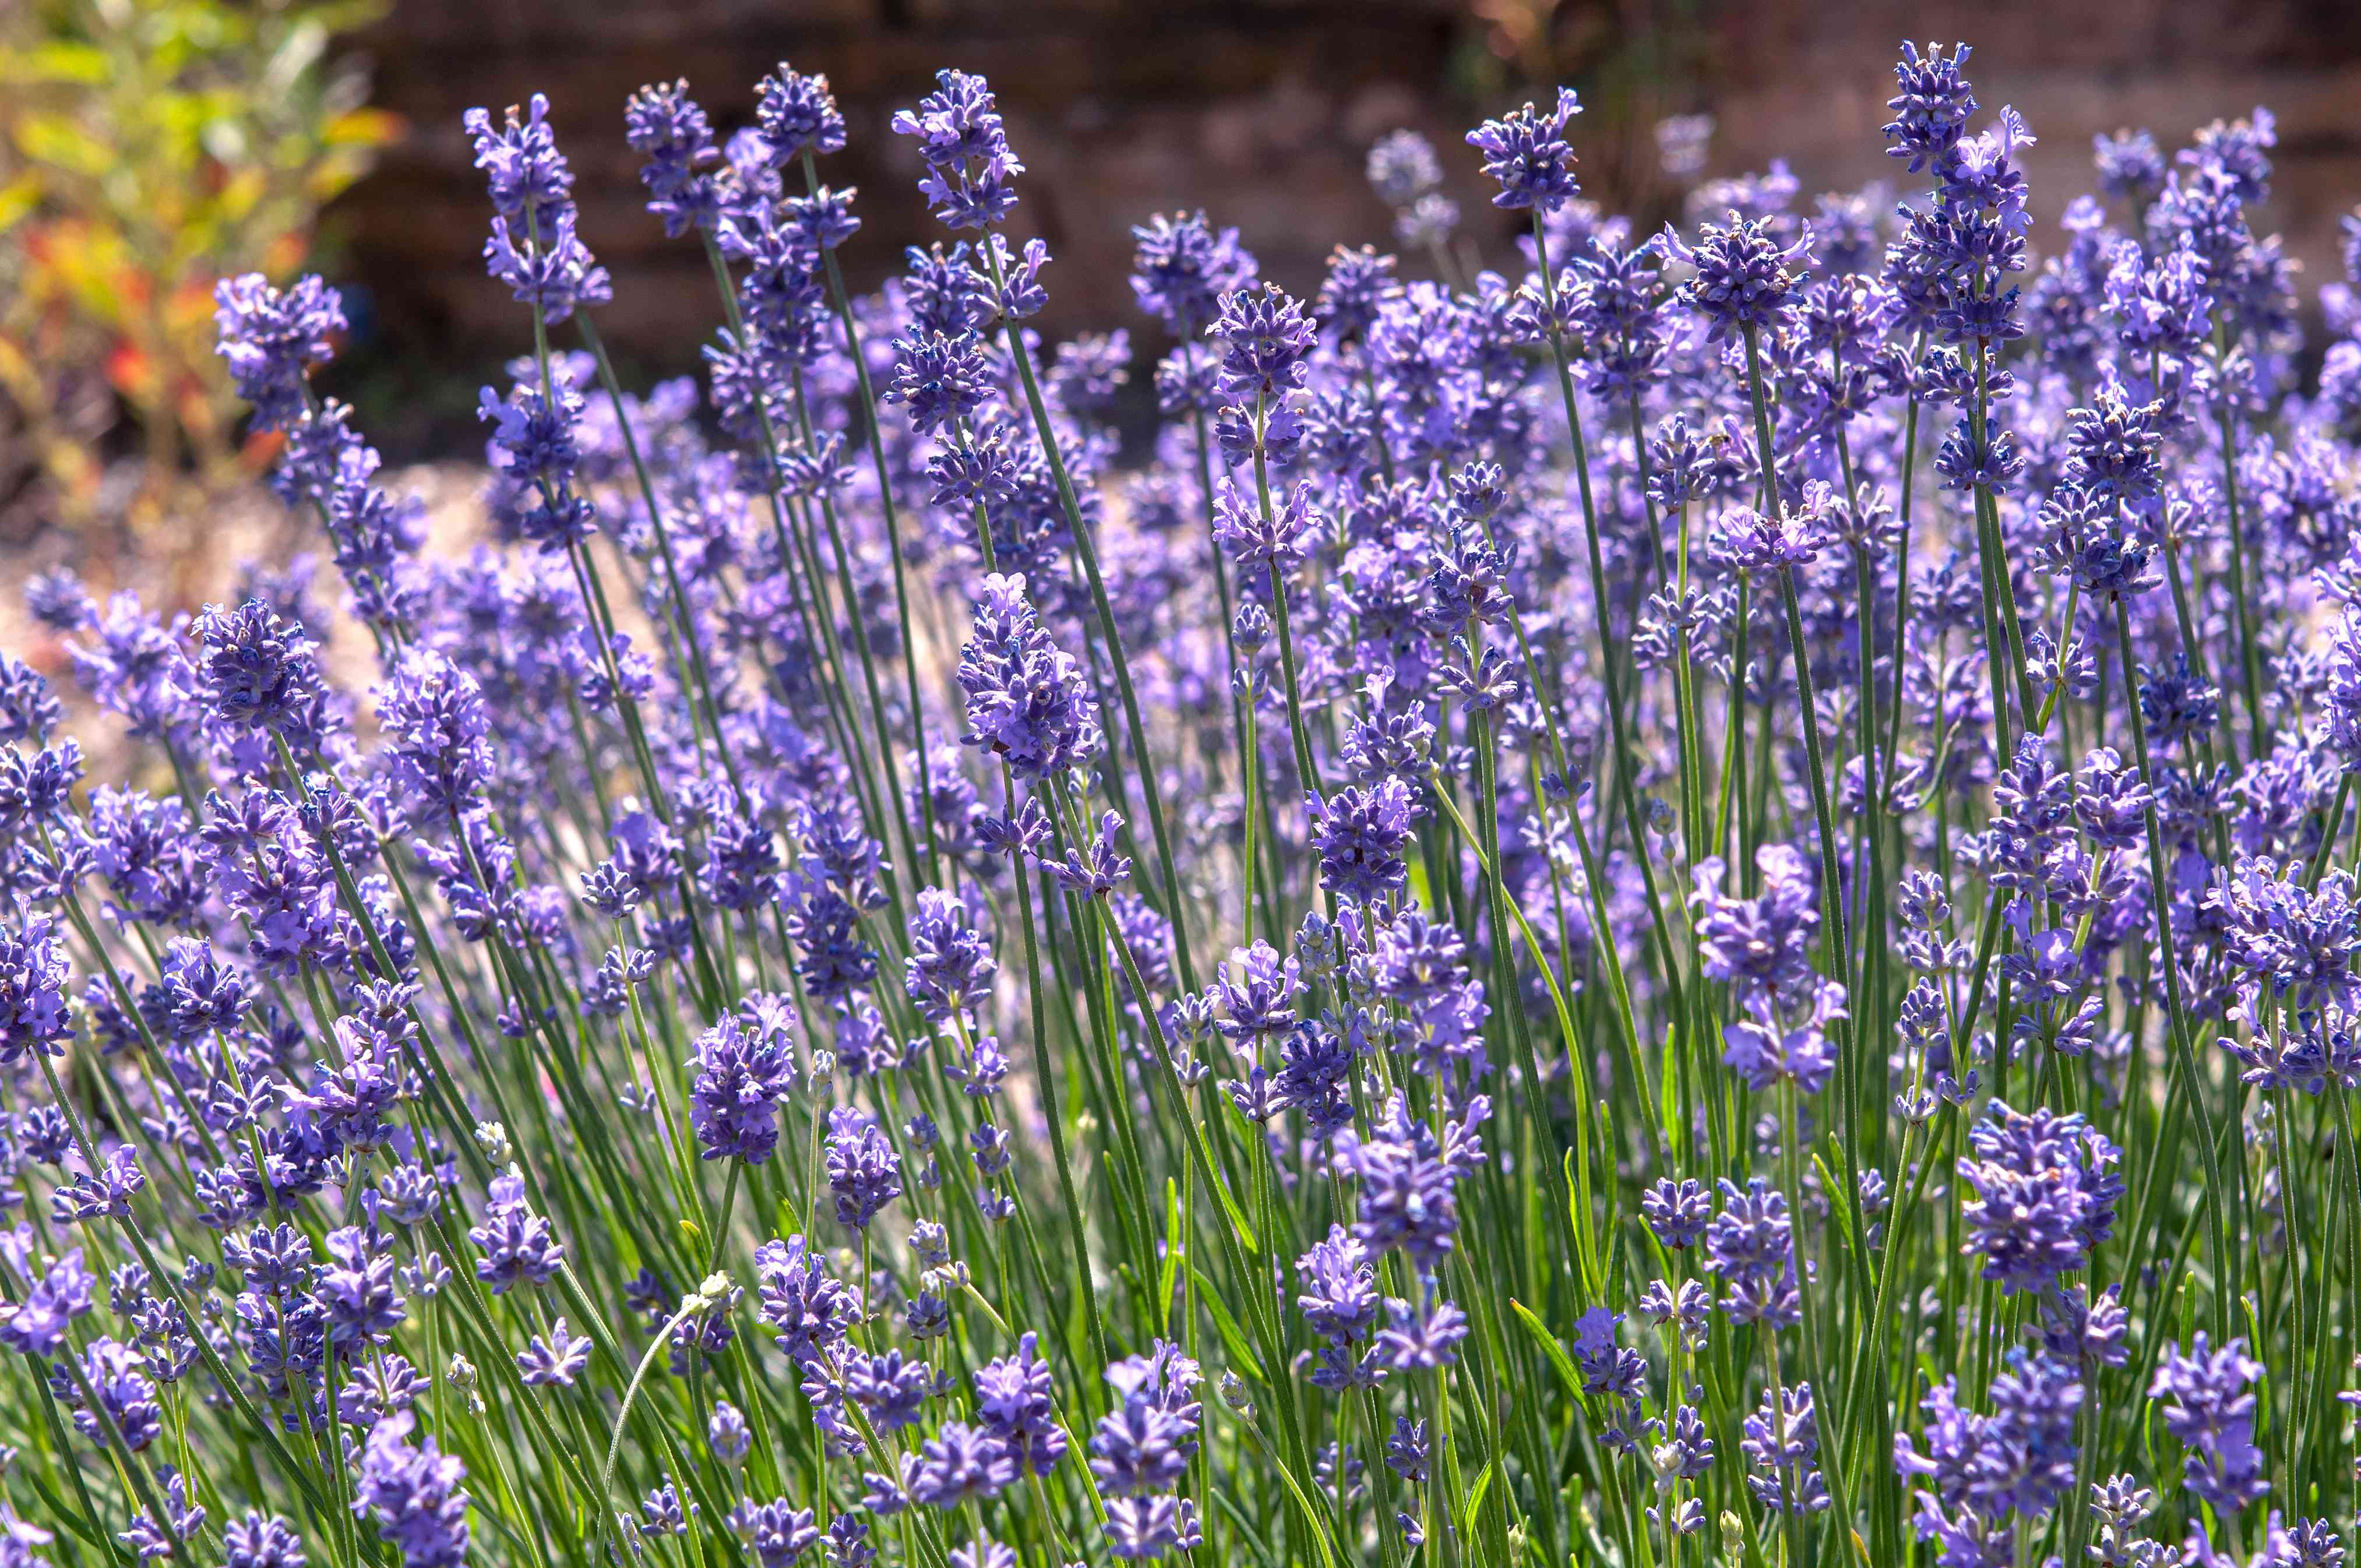 English lavender plants with thin stems and small purple flowers